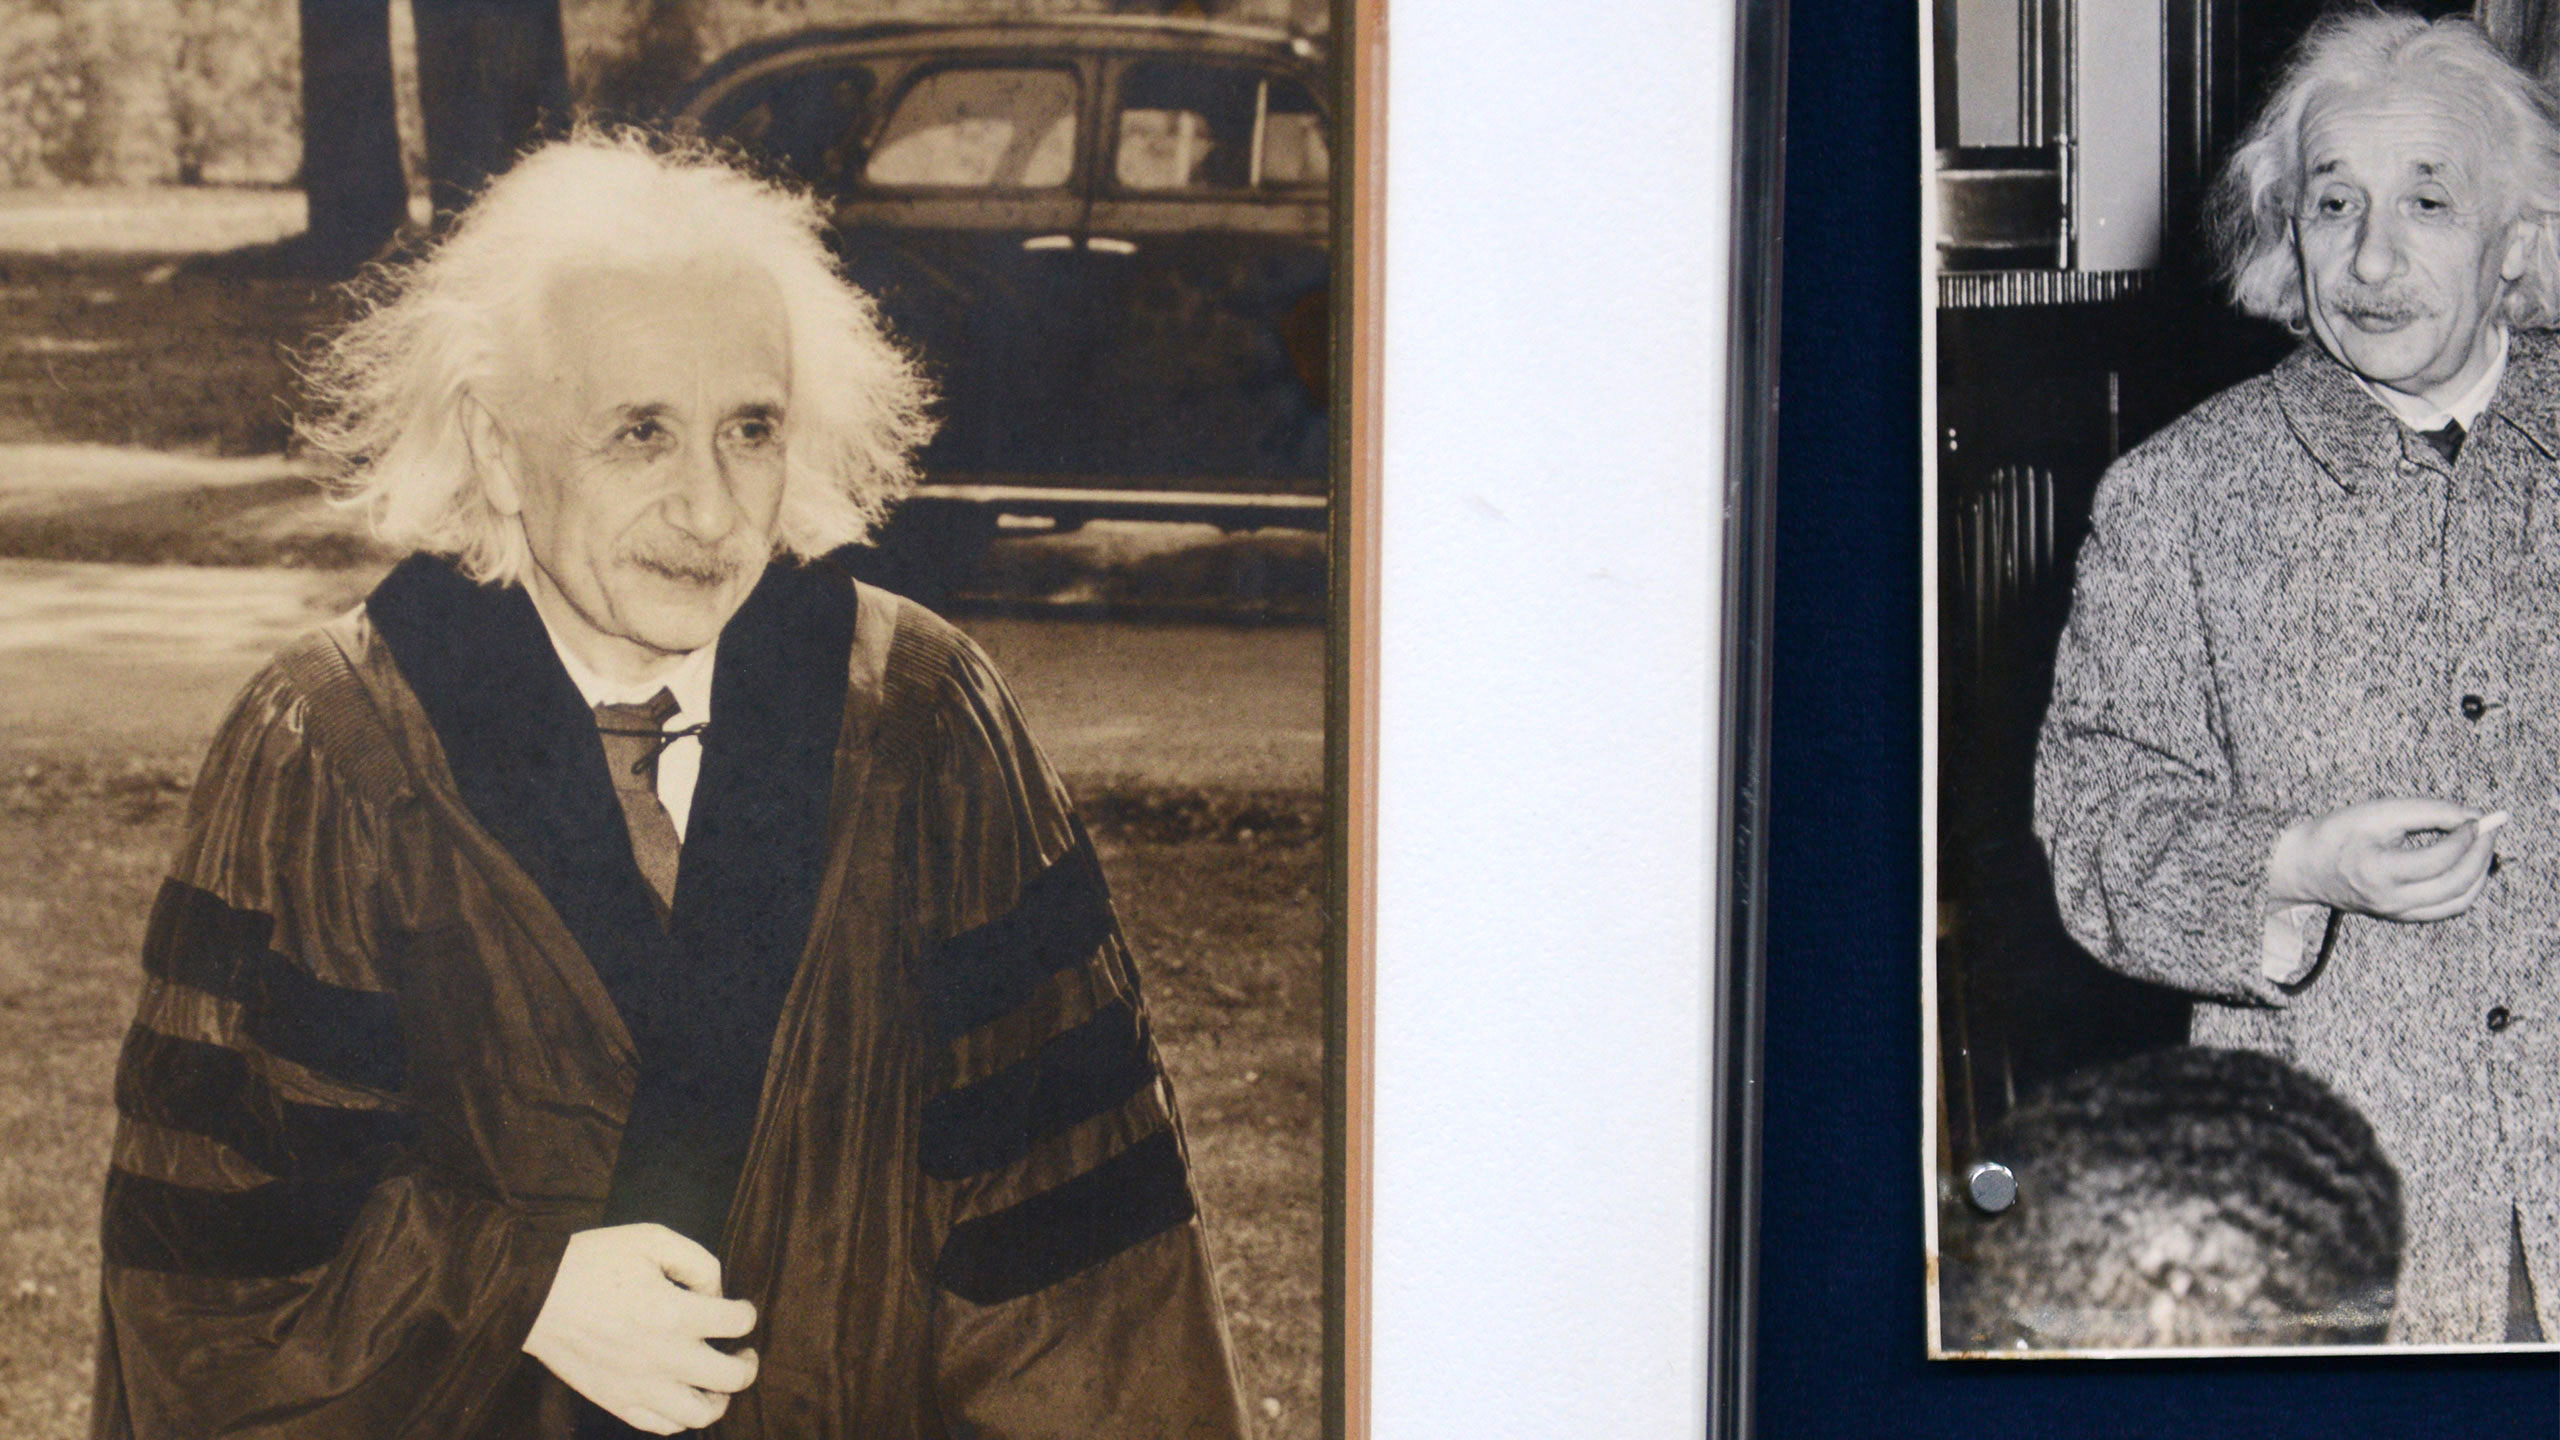 http://www-tc.pbs.org/prod-media/antiques-roadshow/article/images/Einstein-civil-rights-lede-1.jpg